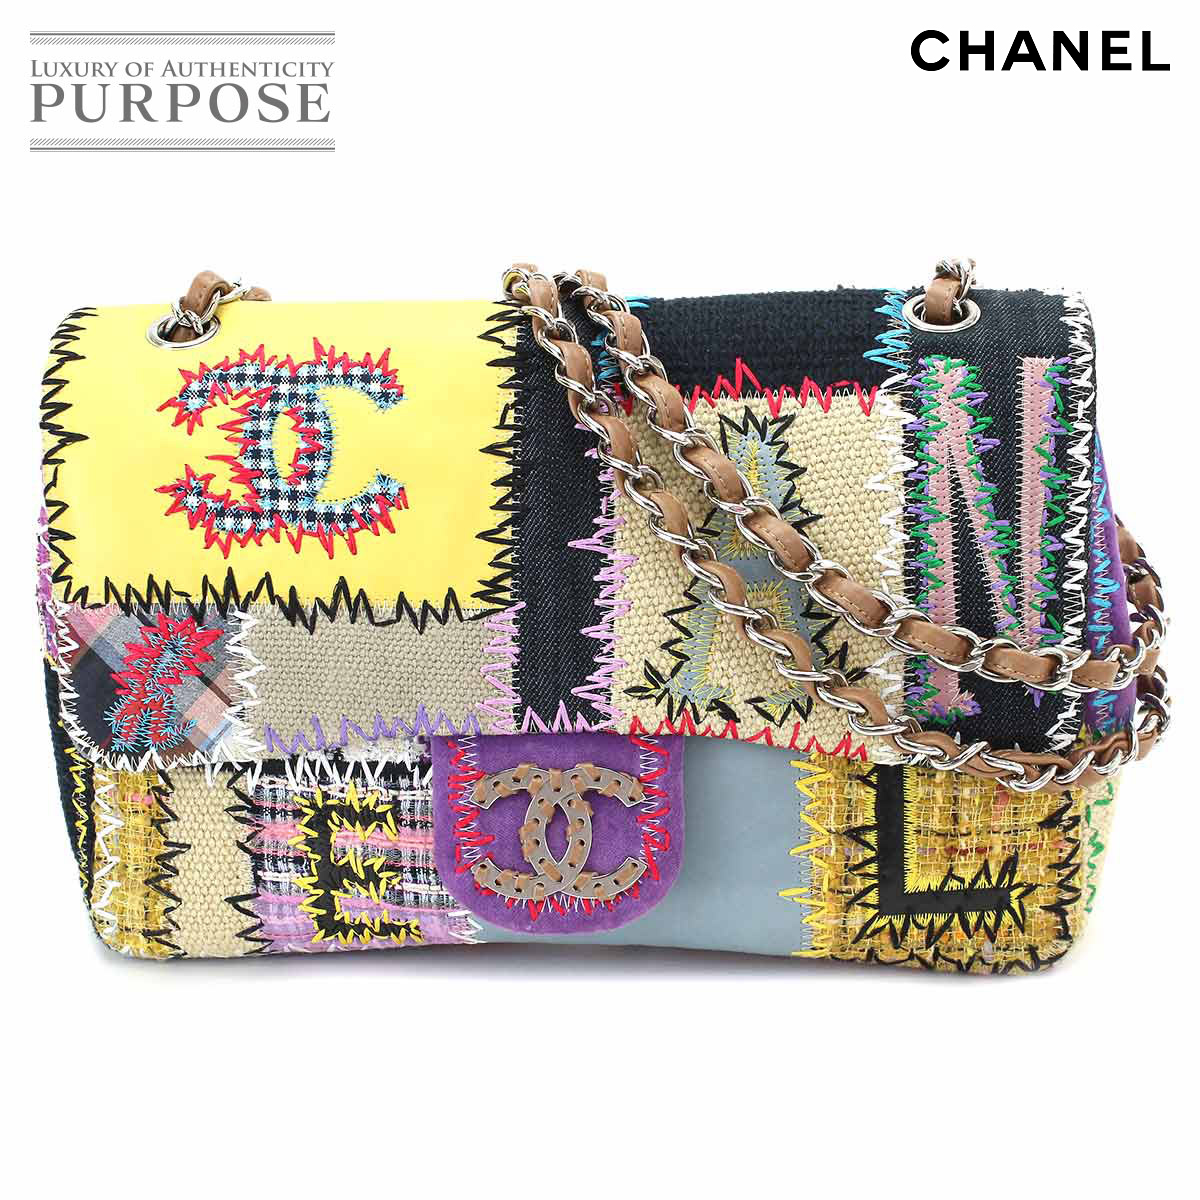 6ac82fa00cf7 [unused display] Chanel CHANEL fabric patchwork chain shoulder bag leather  canvas multicolored A49129 [used] brand